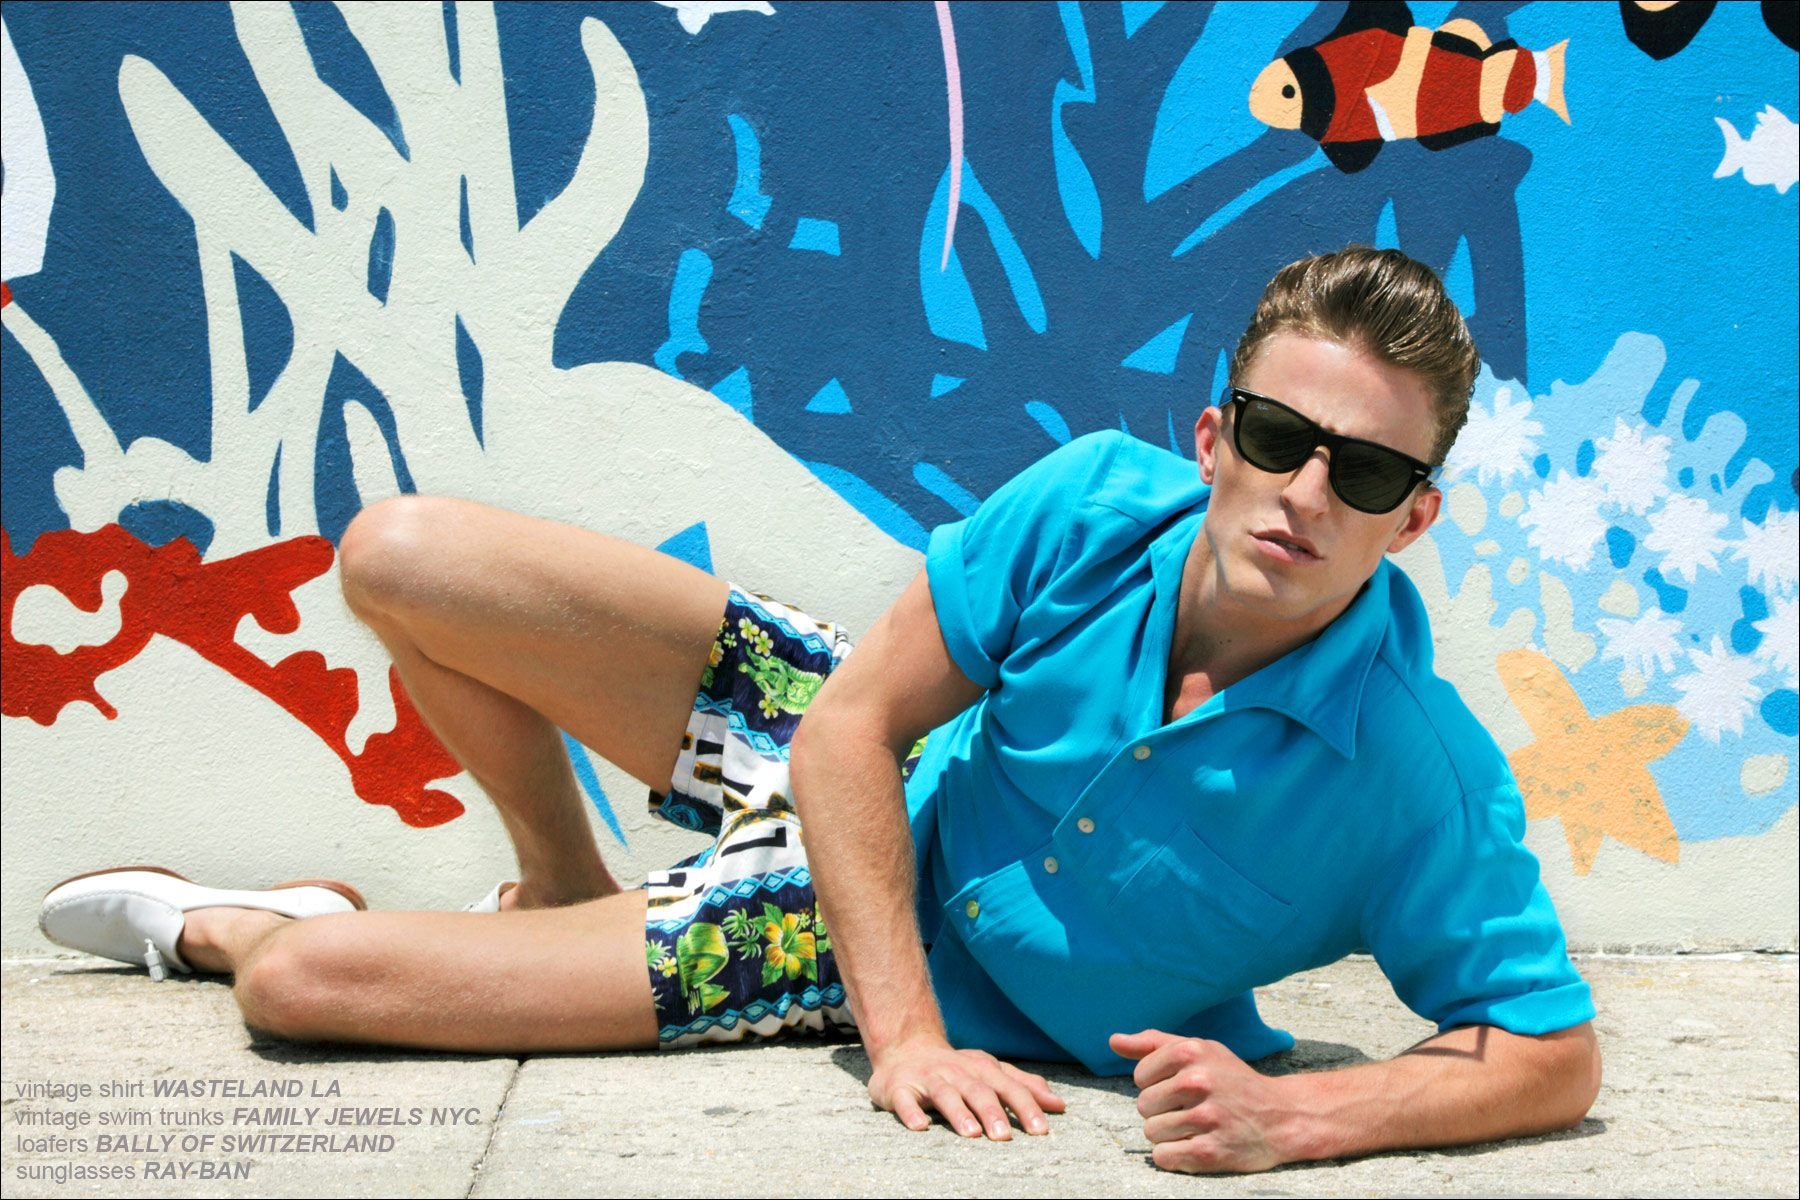 Brendon Beck in Bally of Switzerland and Ray-Bans, photographed by Alexander Thompson for Ponyboy Magazine.